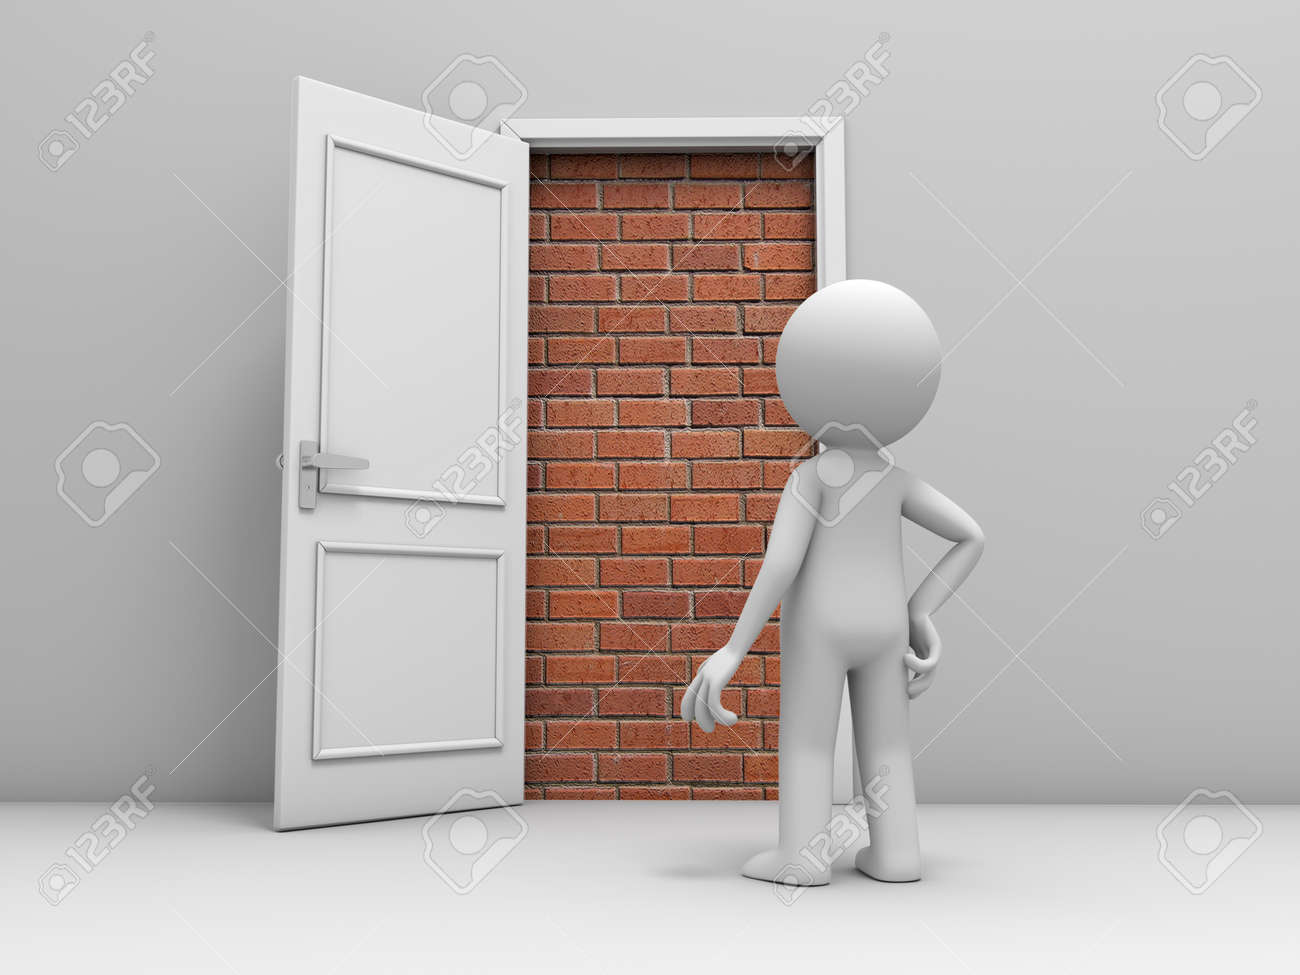 3d man, people, person in front of a locked door with bricks - 24092489